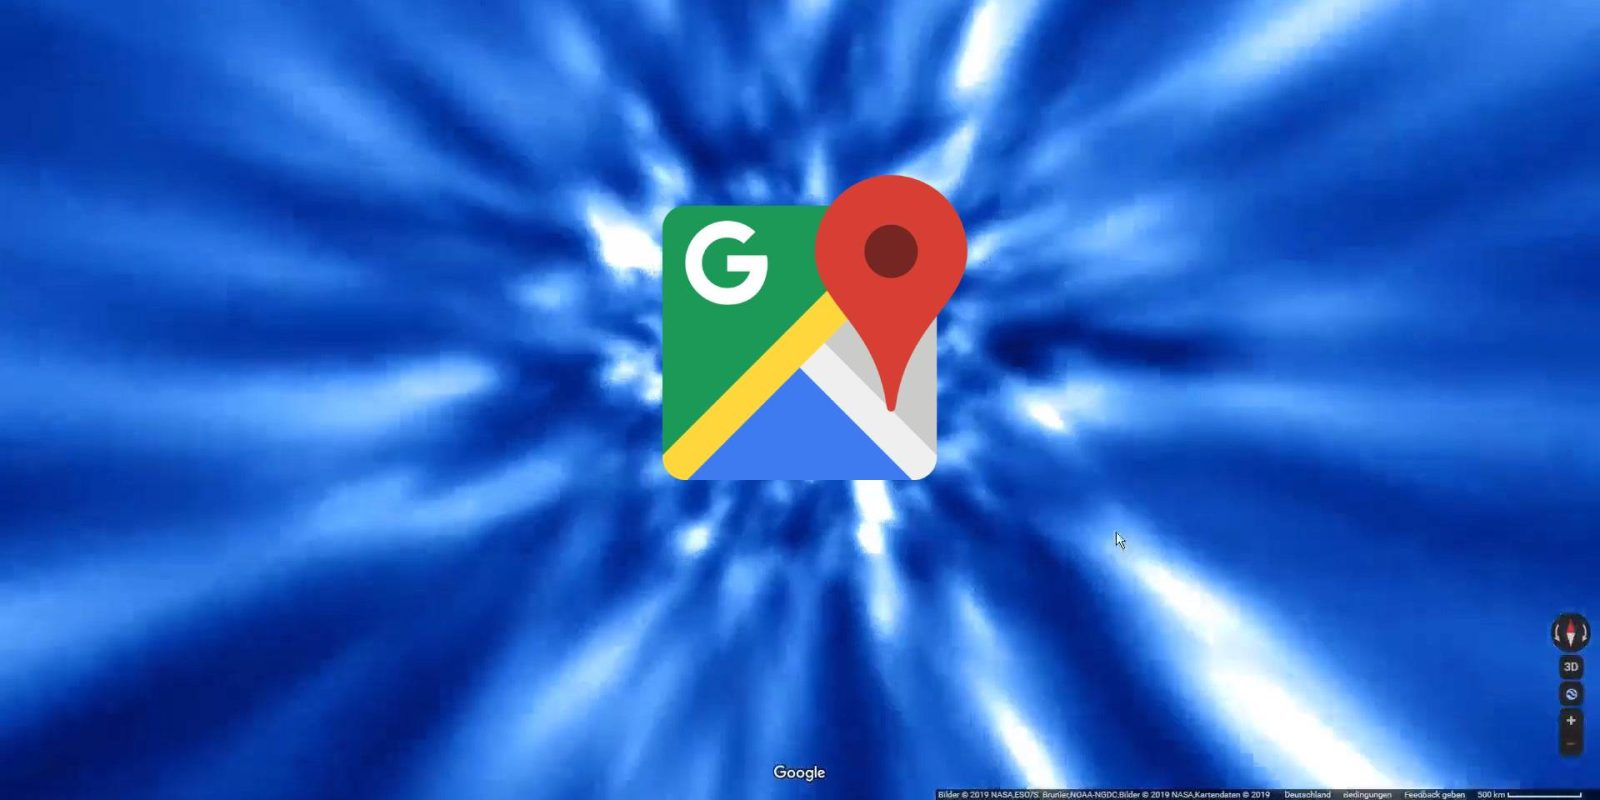 Google Maps now throws you into hyperspace when switching between planets